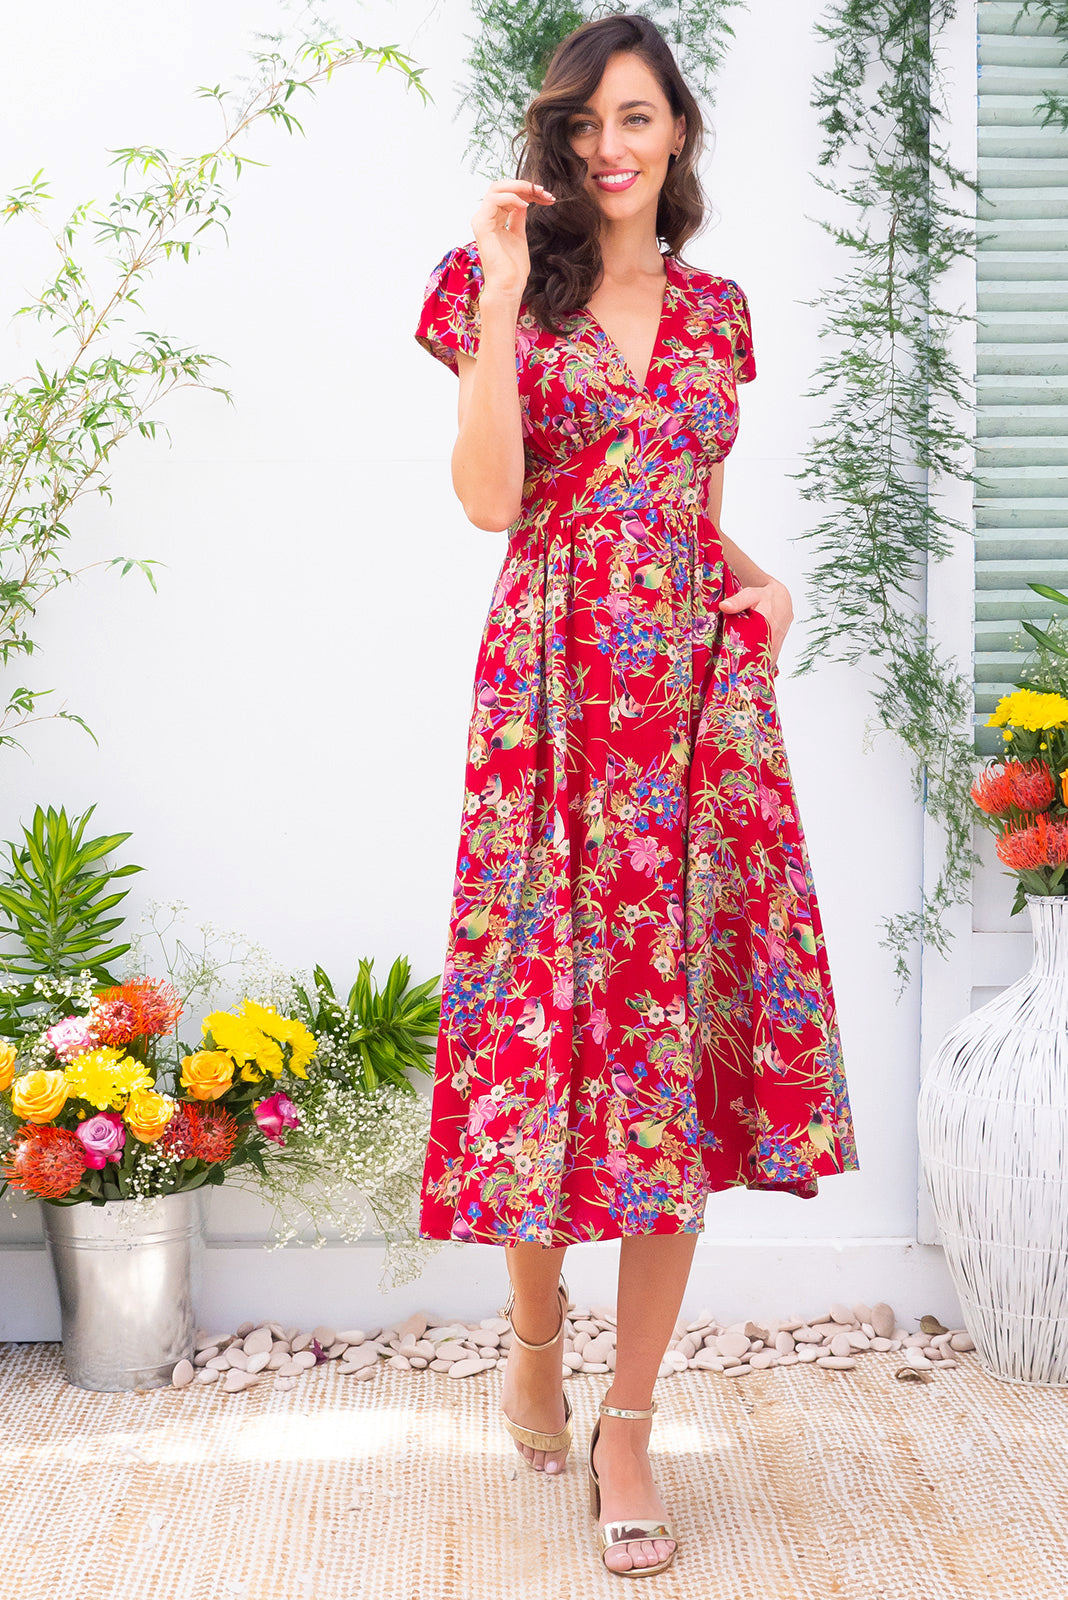 Lizzie Red Honeyeater Dress Midi Length Crimson Bird and Floral Print Rayon Summer Dress with V Neck, Cap Sleeves and pockets.